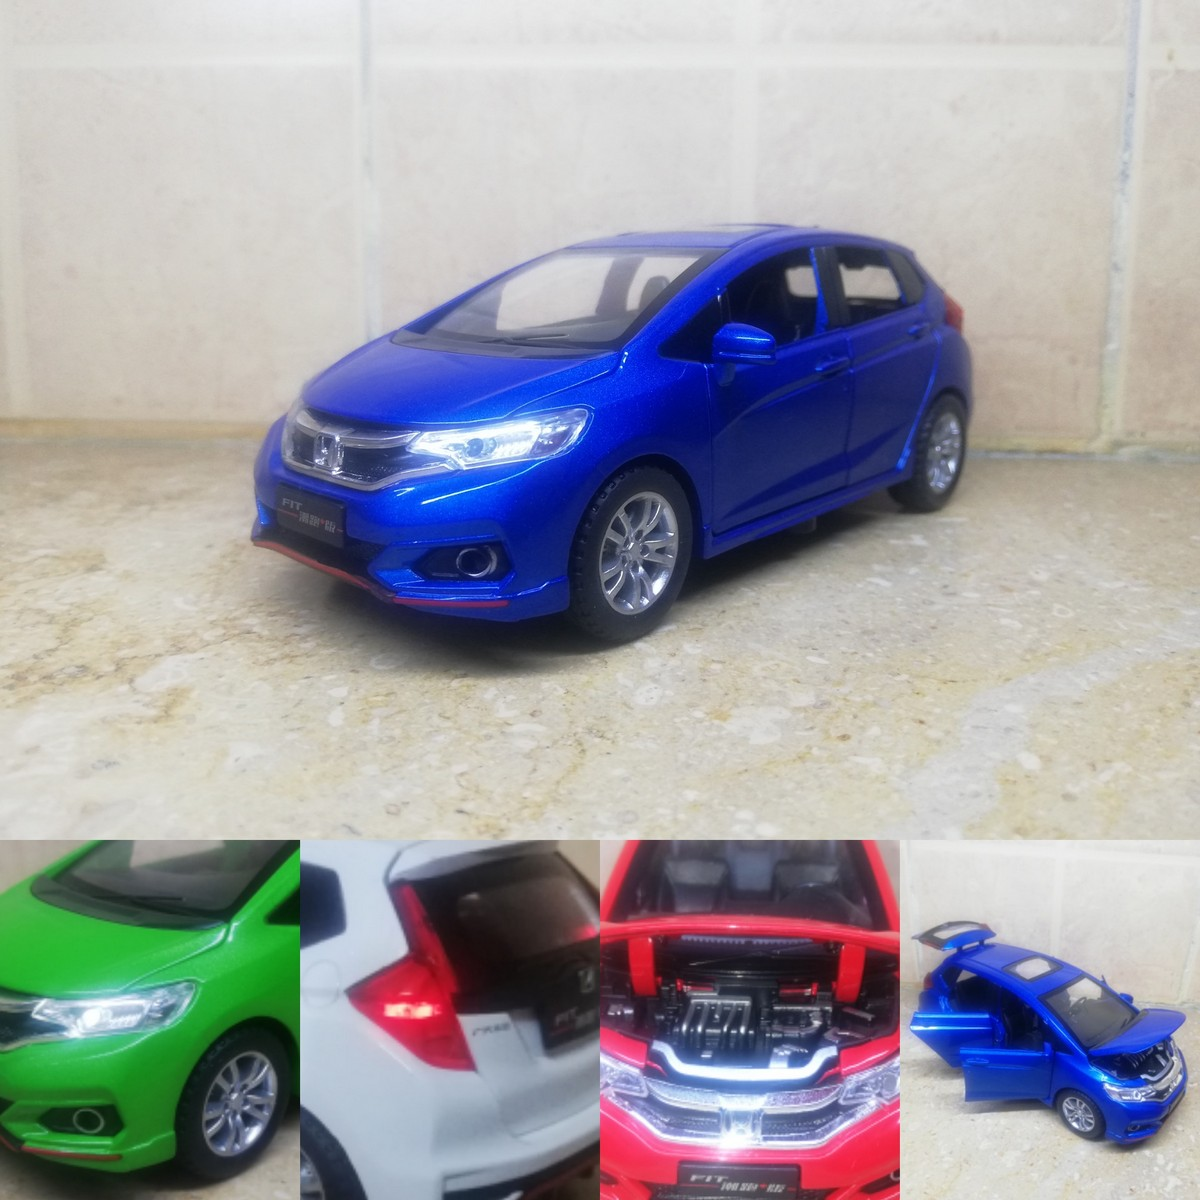 Honda Fit 1:32 Diecast Metal Model Cars Collectable Alloy Toy Car 6 inch Pakistan/ Pakistani Models Blue Red Green White